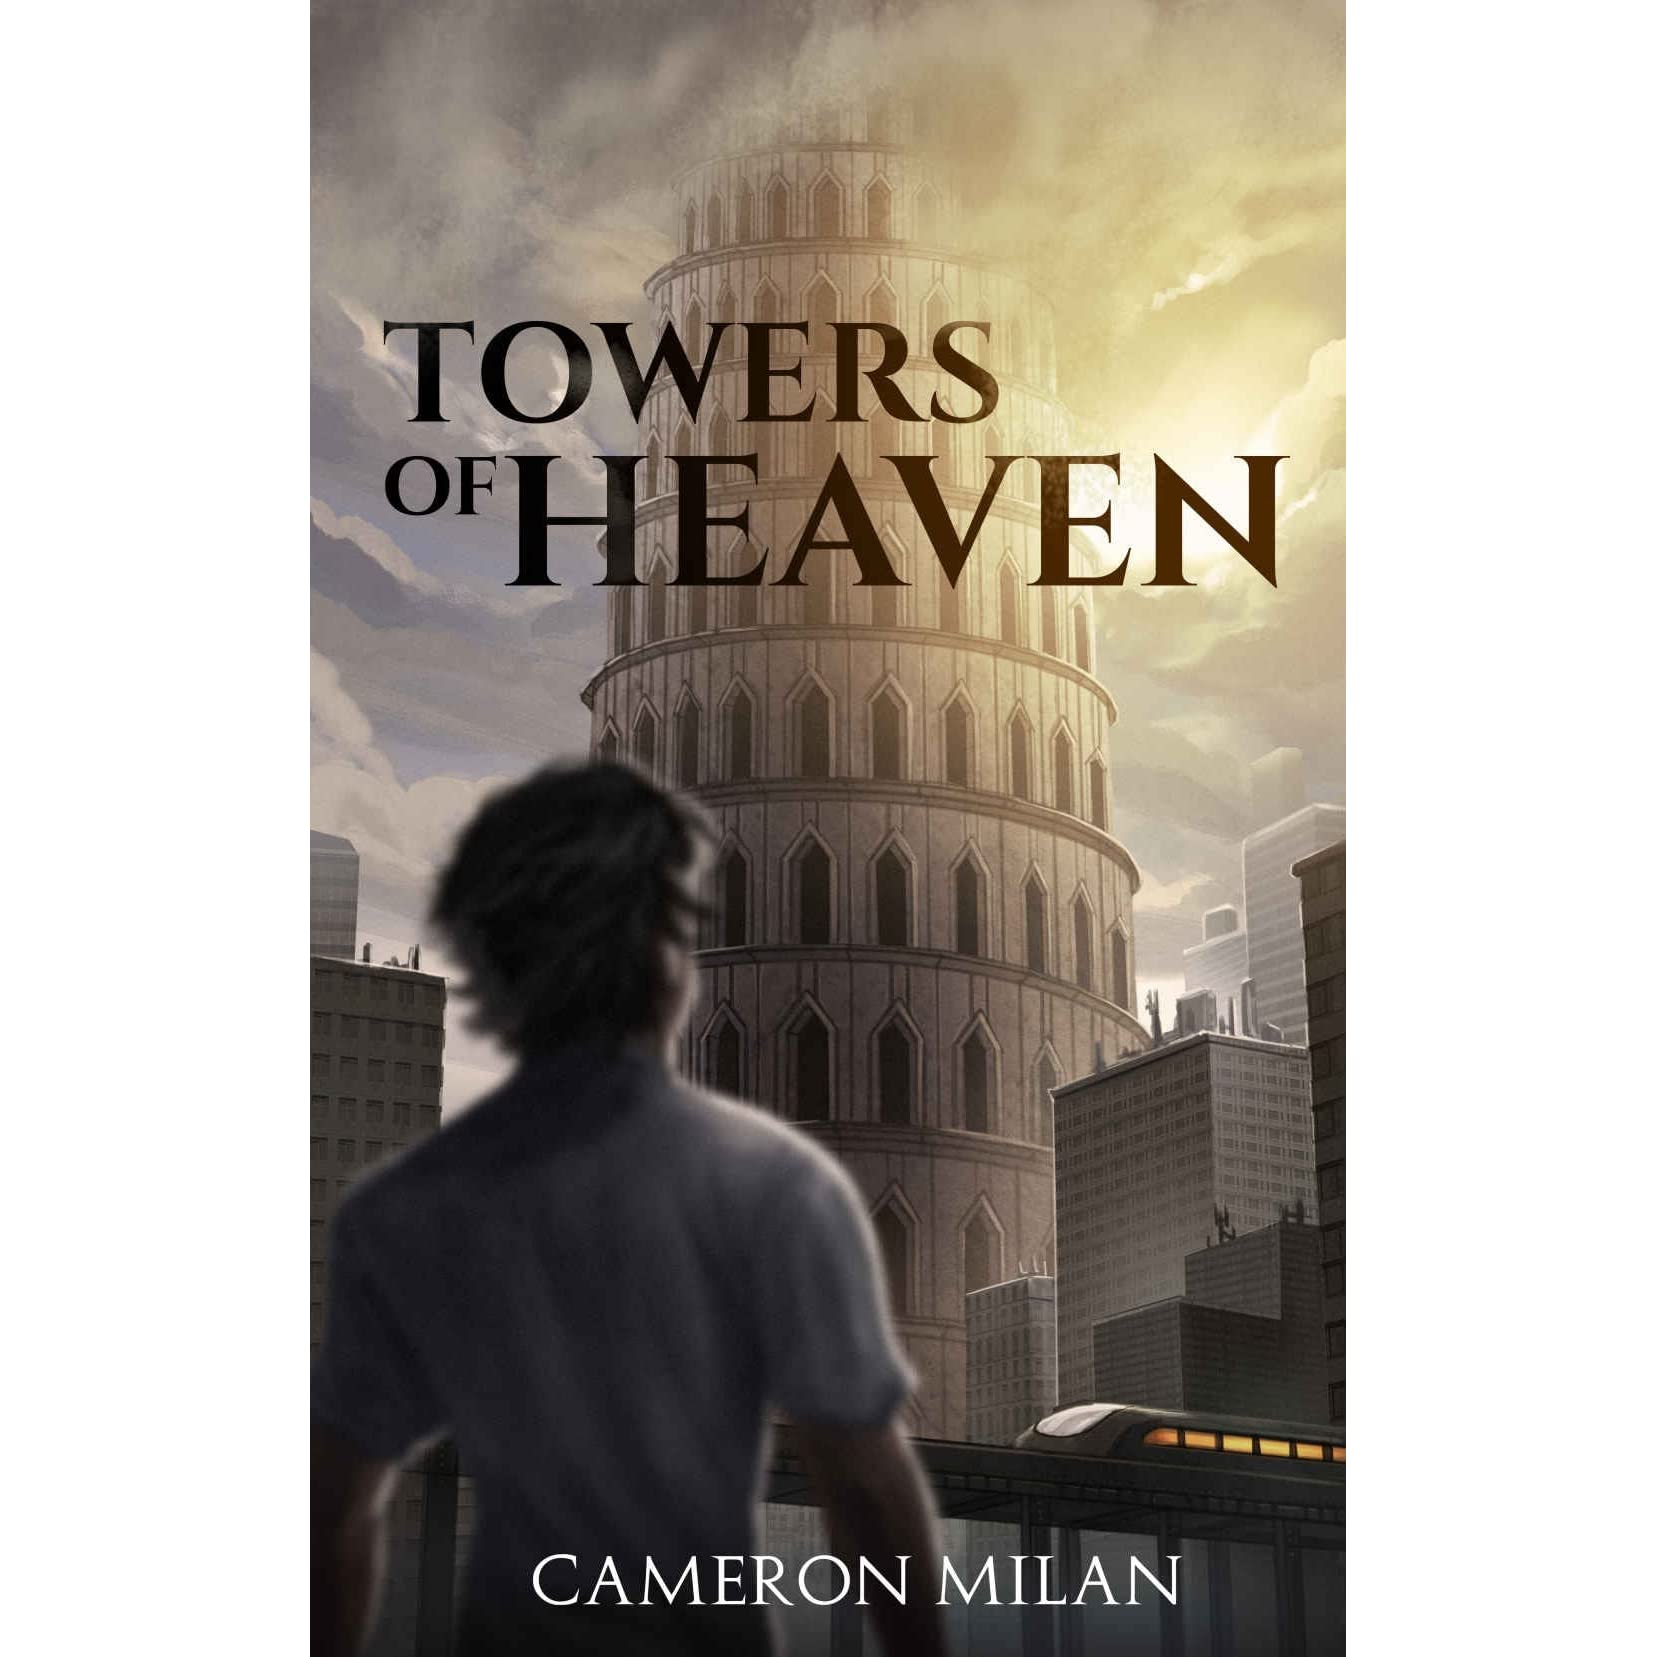 Towers of Heaven (Towers of Heaven, #1) by Cameron Milan